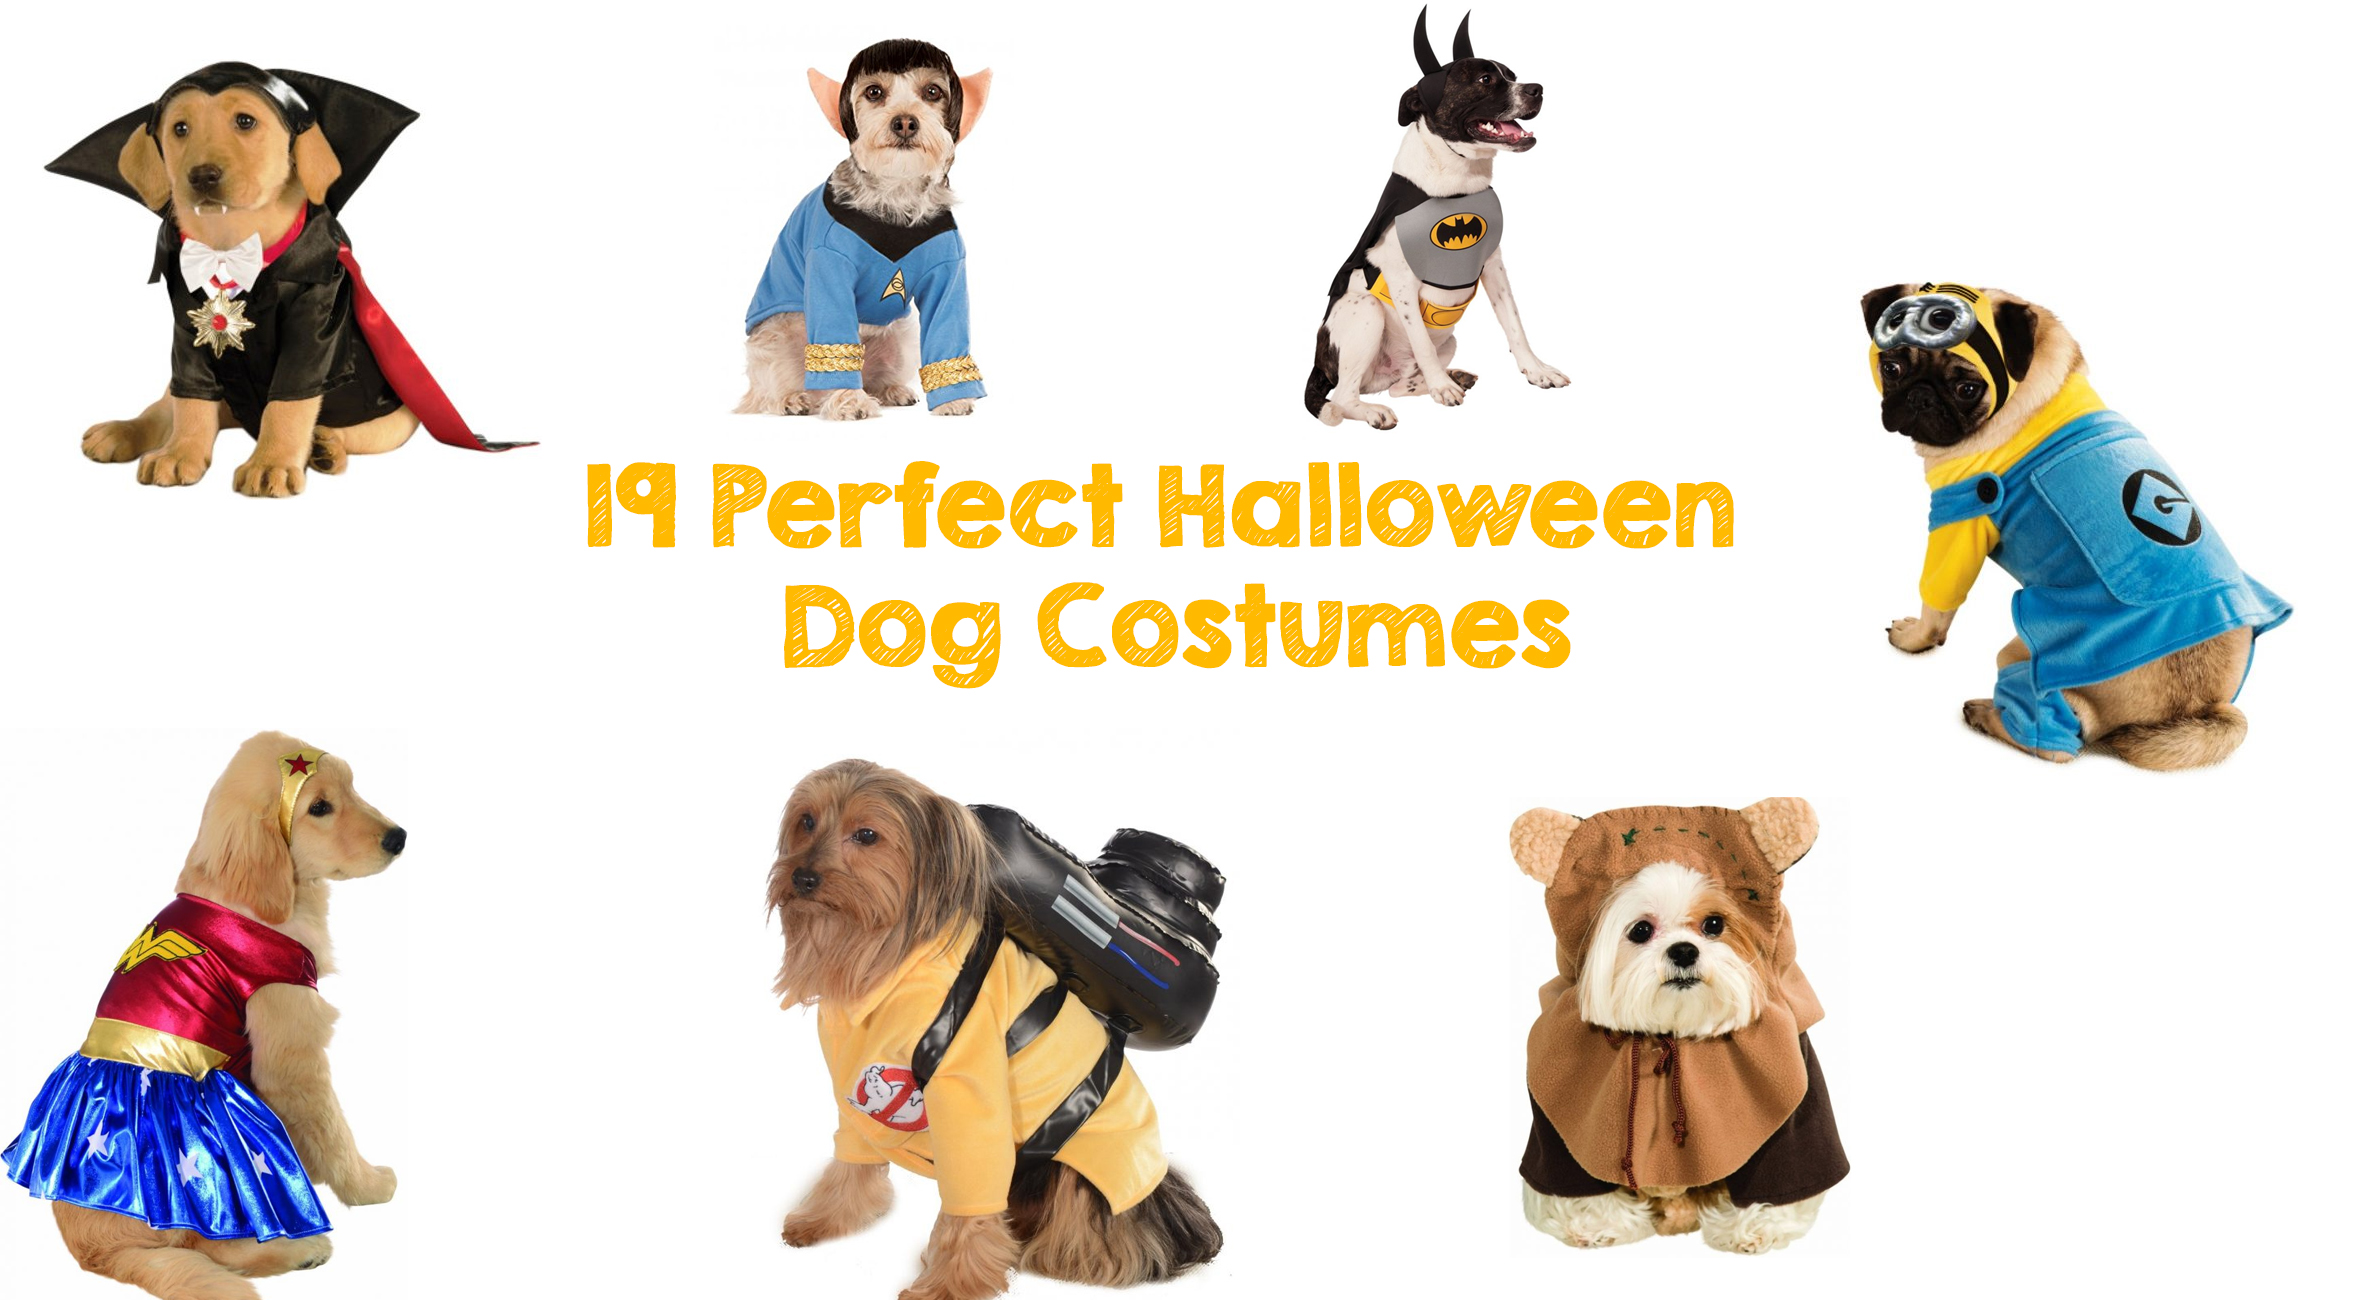 19 Perfect Halloween Dog Costumes